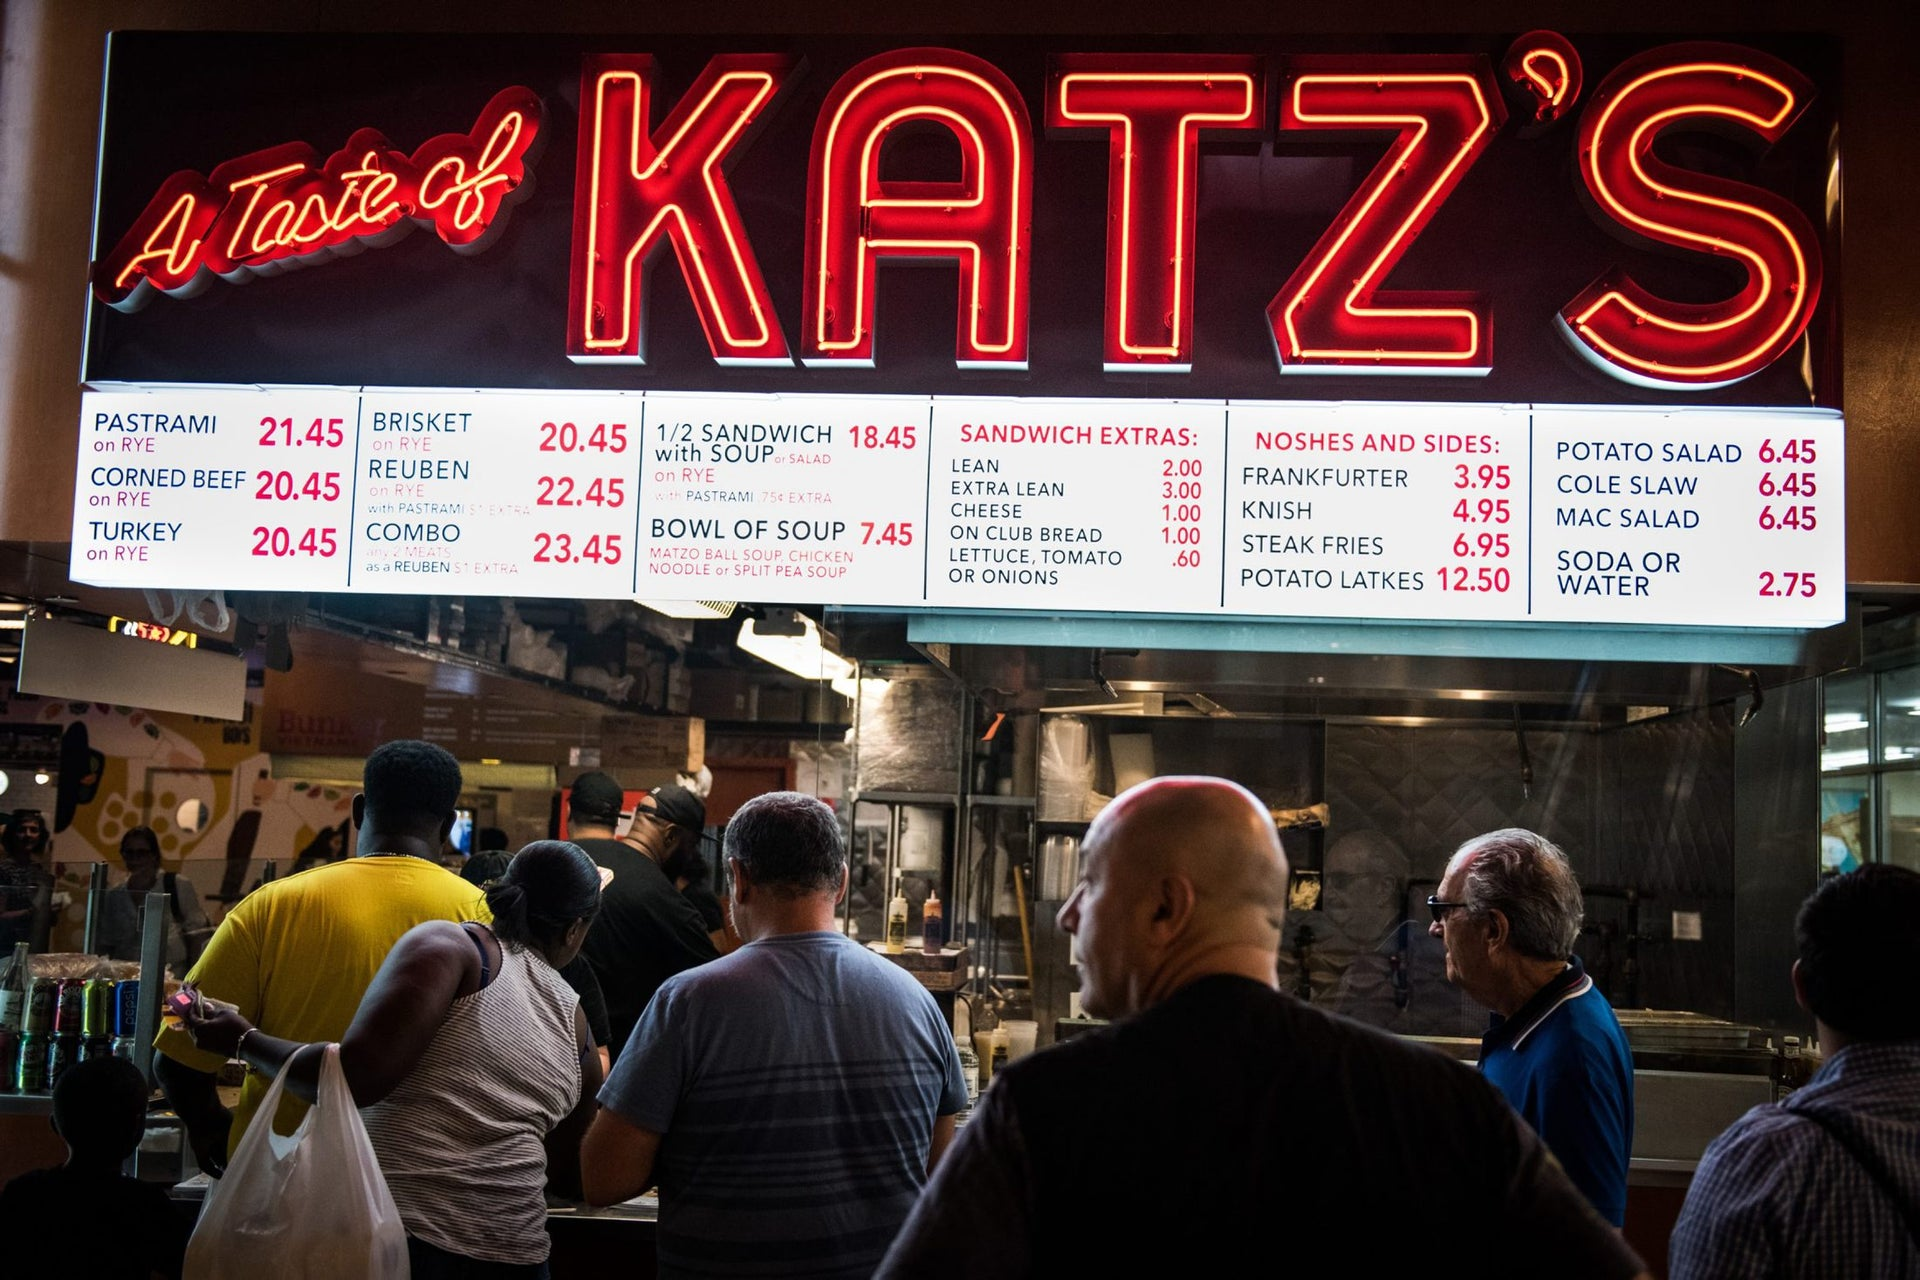 Customers wait in line to order from A Taste of Katz's deli inside DeKalb Market Hall at City Point in the Brooklyn borough of New York.